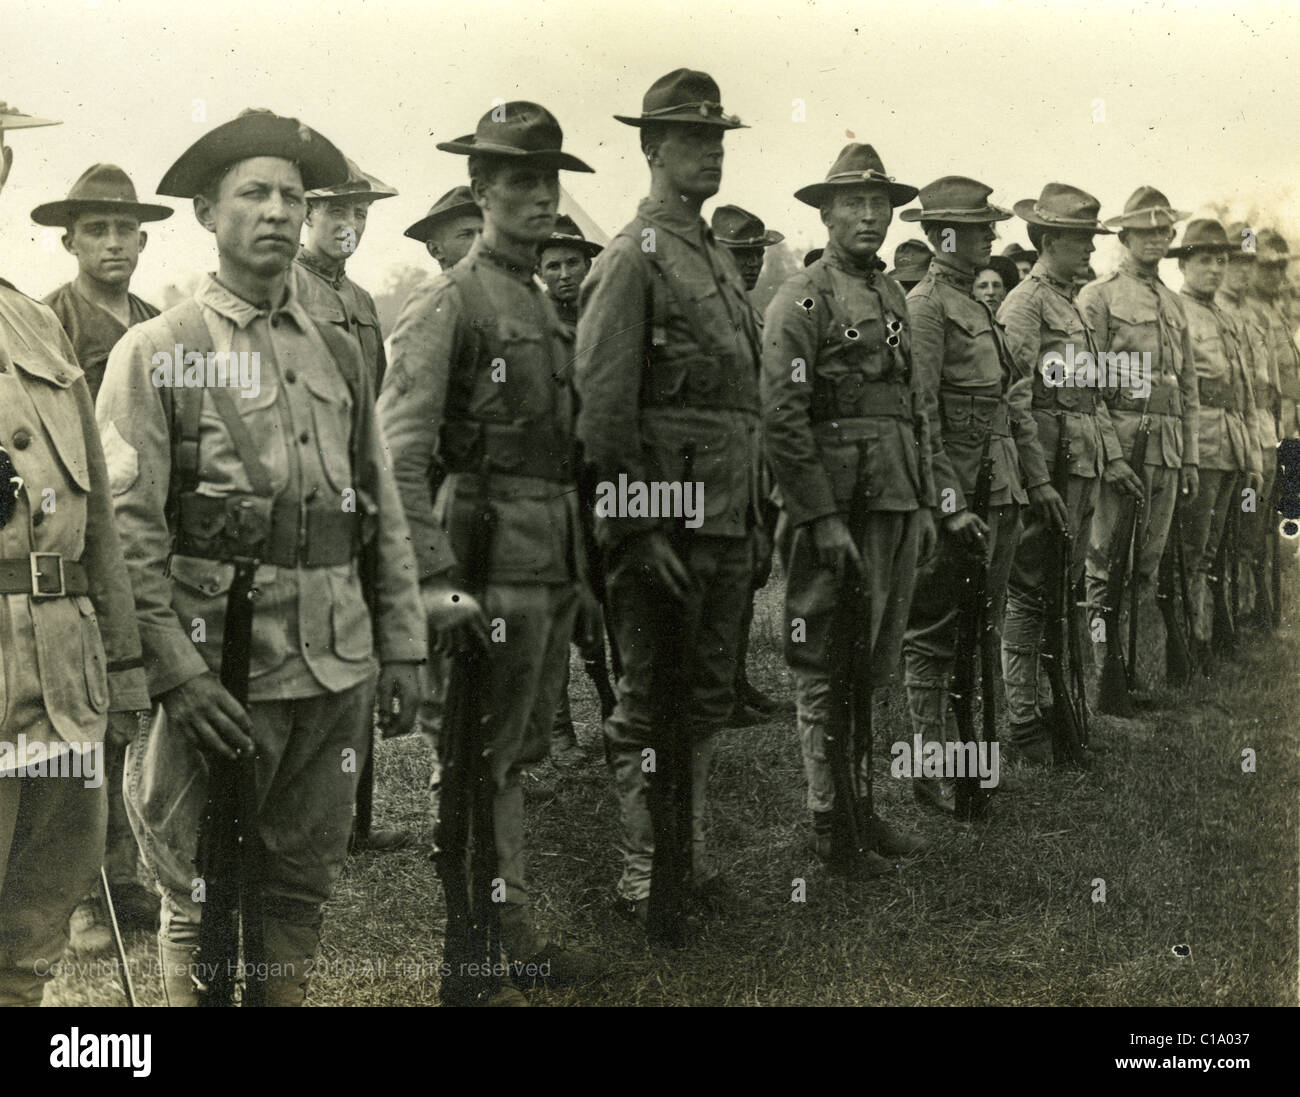 Cavalrymen standing in formation during 1910s military army uniforms Americana - Stock Image